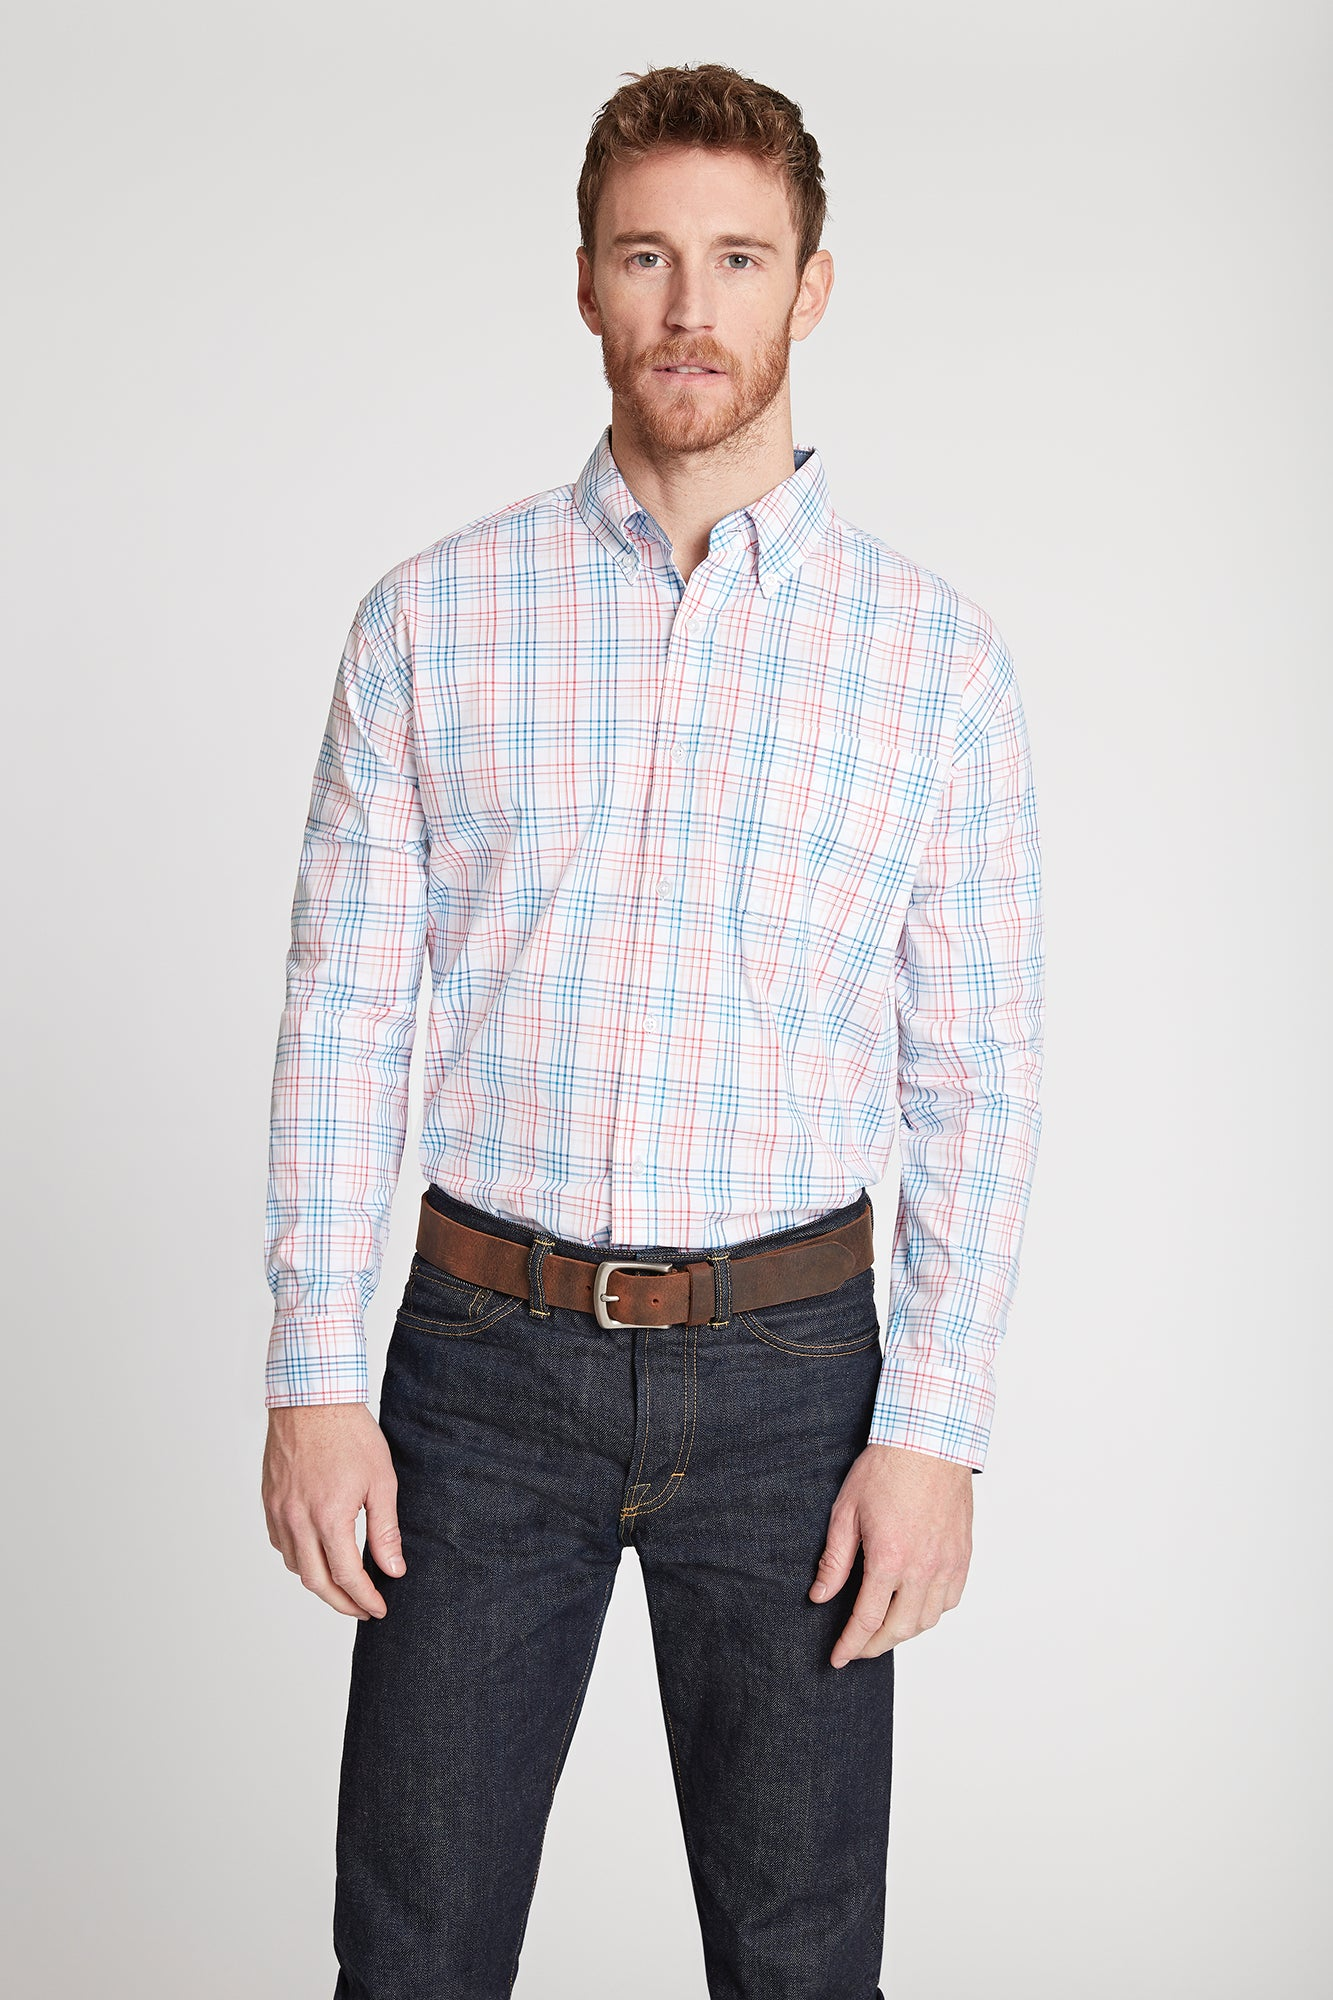 Men's Black Label Premium Cotton Plaid Button-Down in Coral | Ely Cattleman